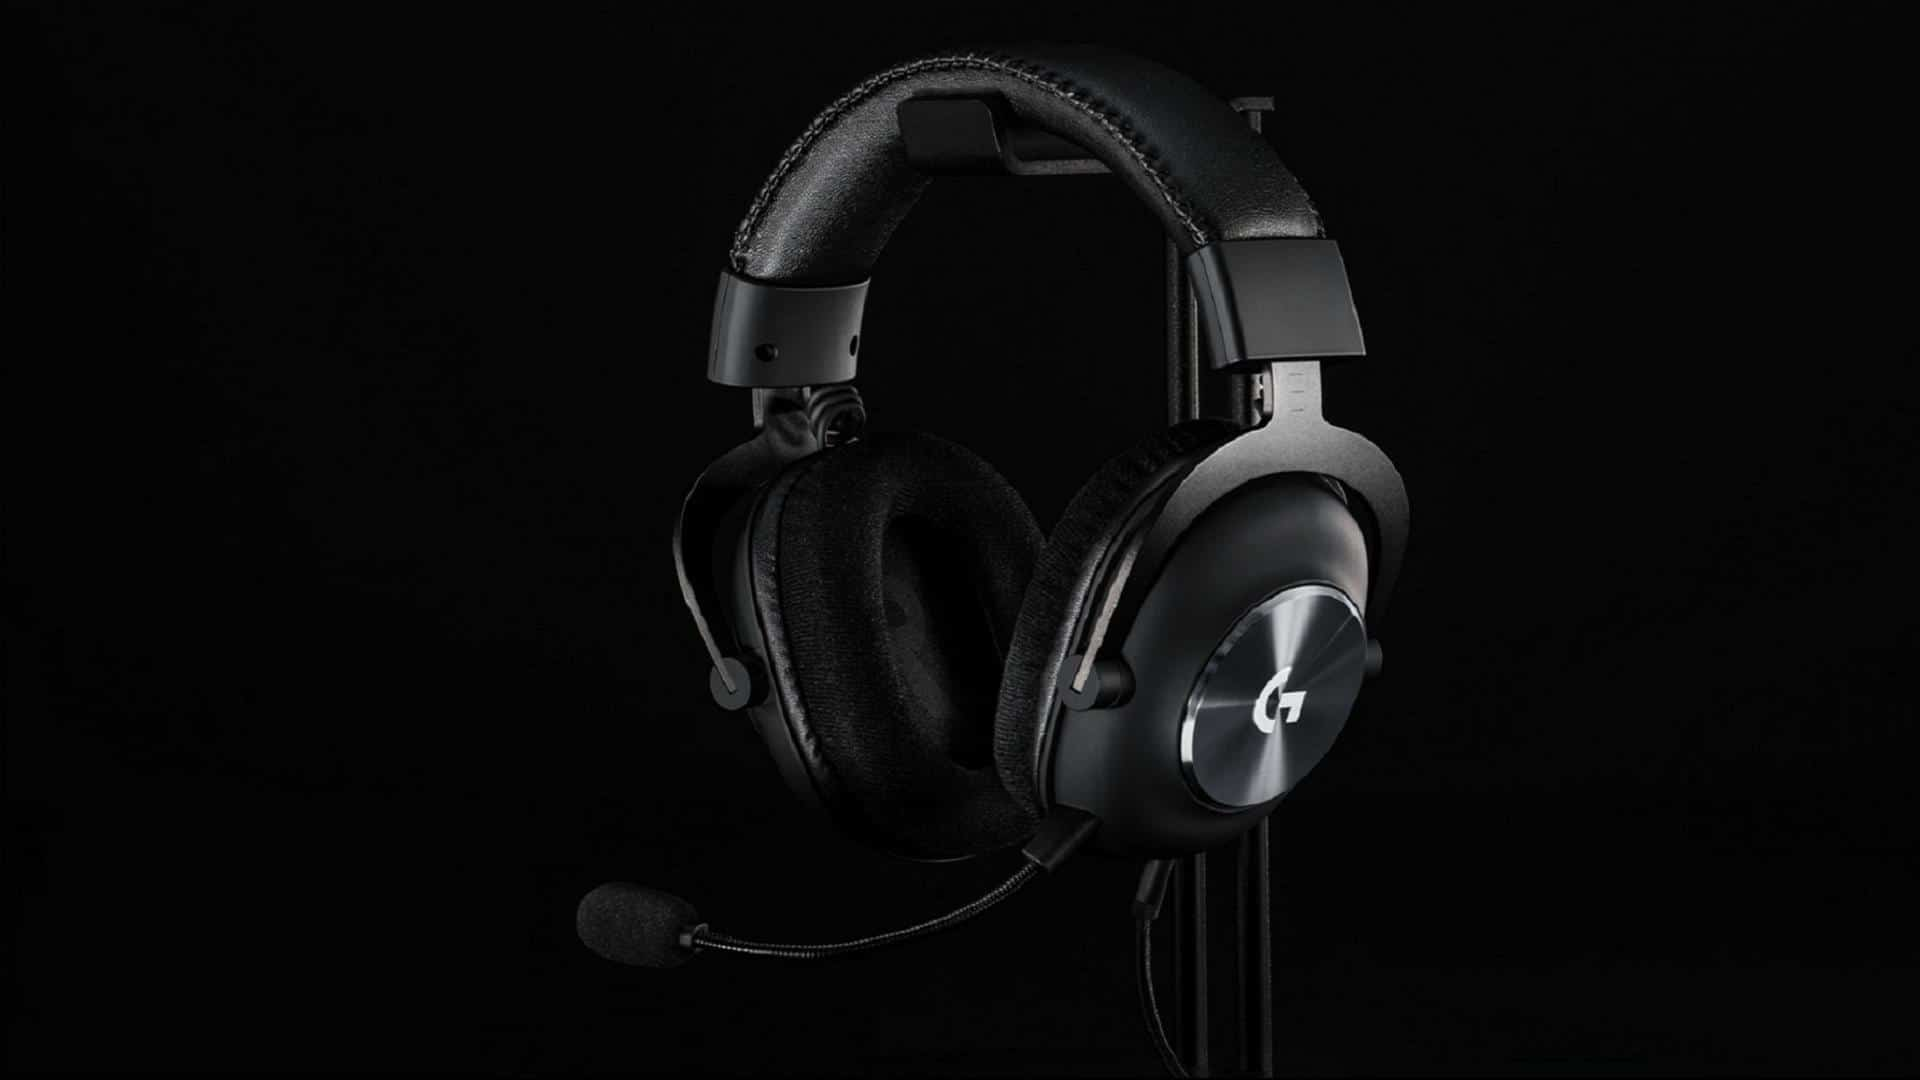 Logitech G Pro X Gaming Headset Quick Review